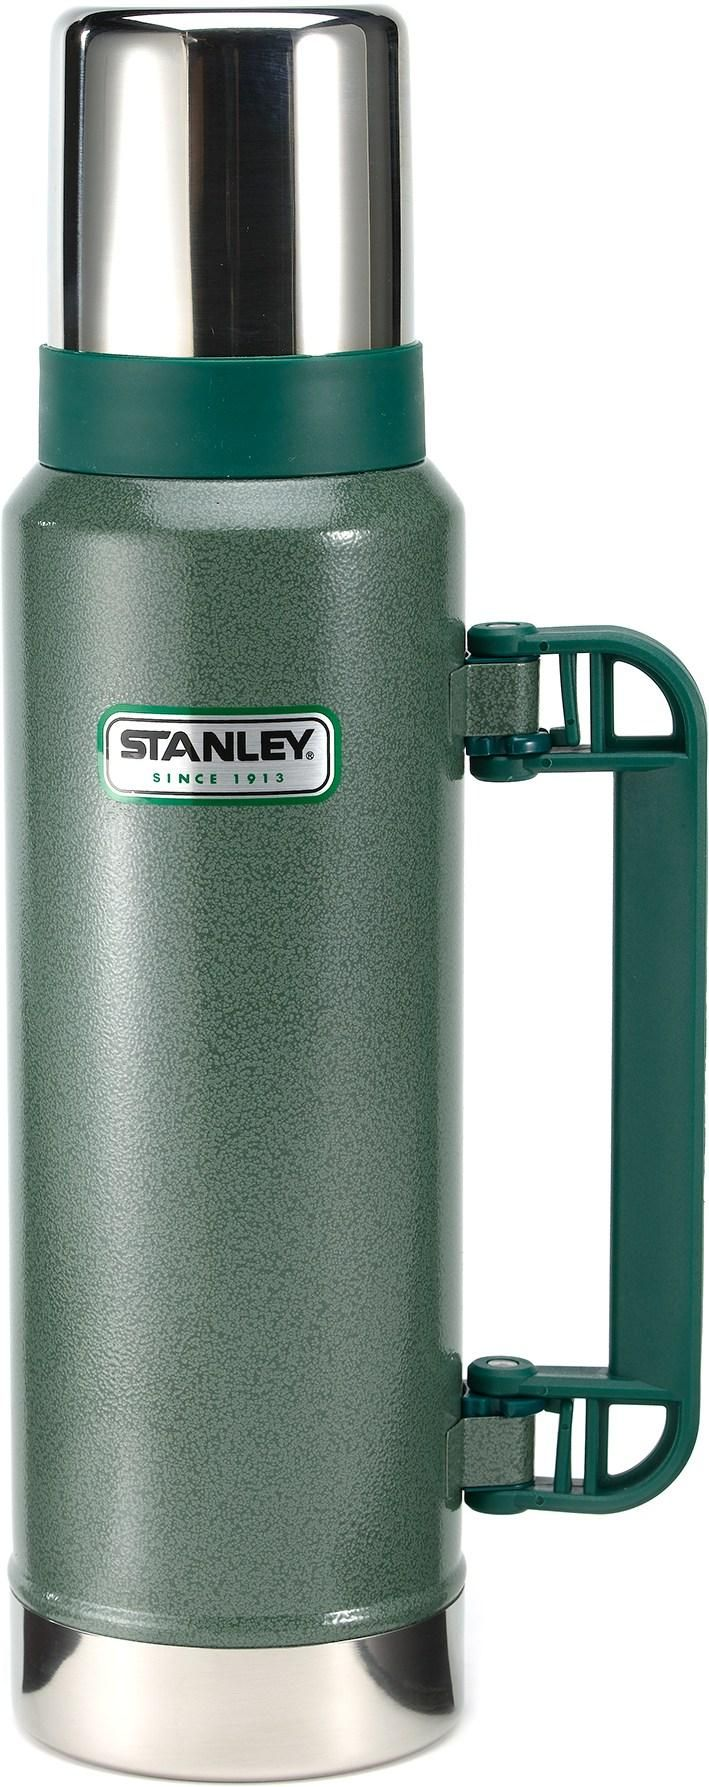 Stanley Mountain Compact Cook Set, 709ml, Stainless Steel